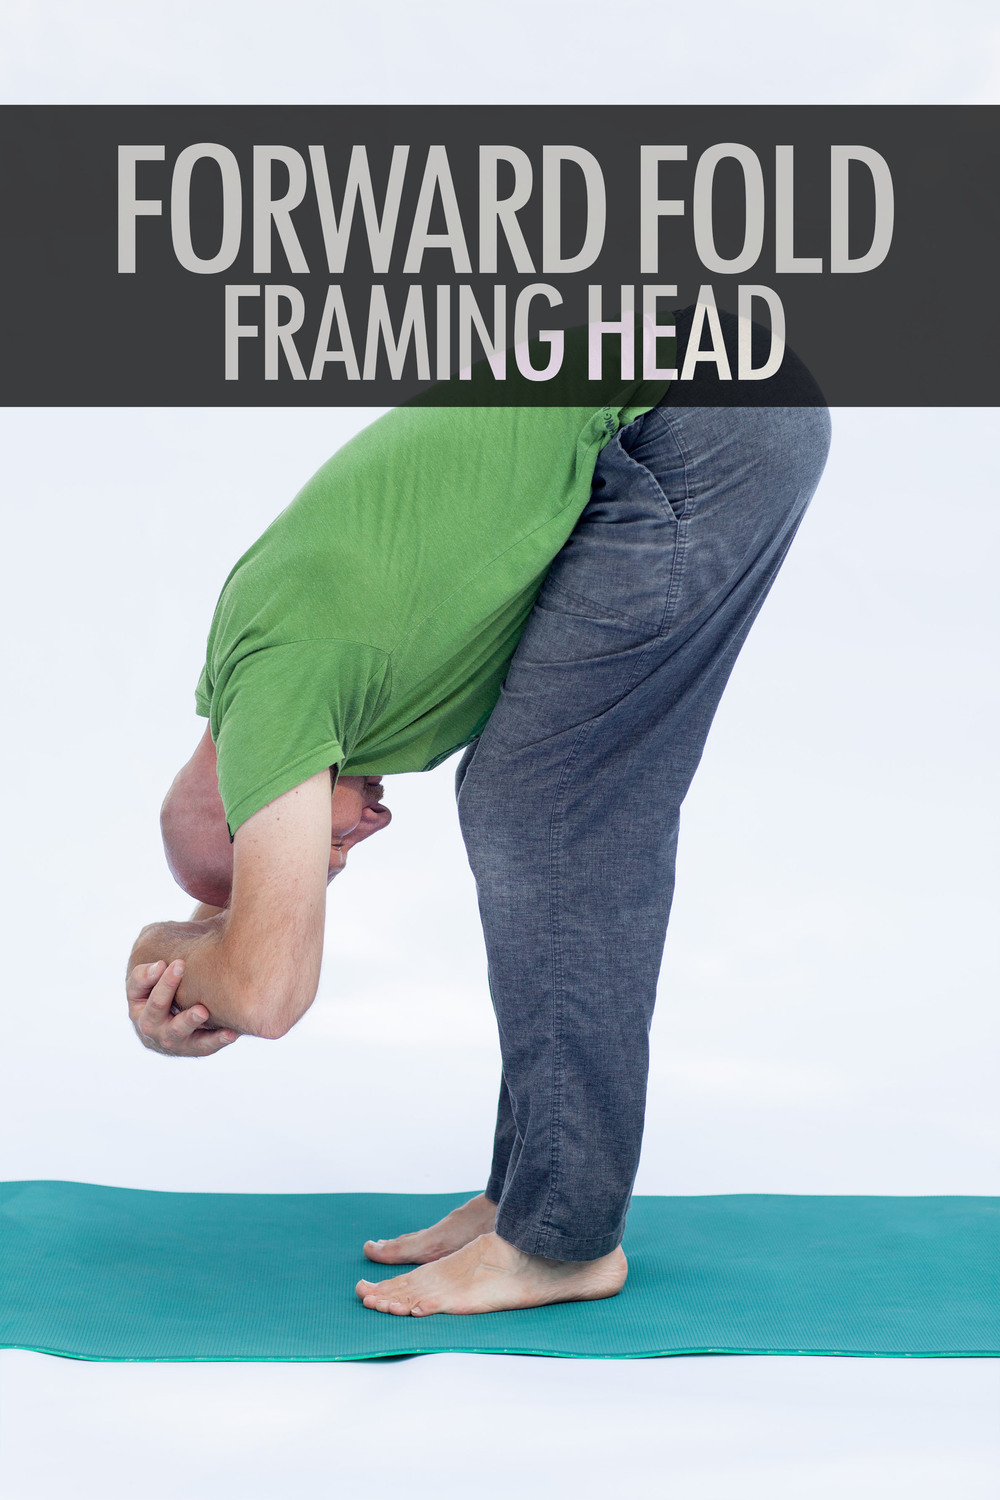 Framing Head Forward Fold 2.jpg